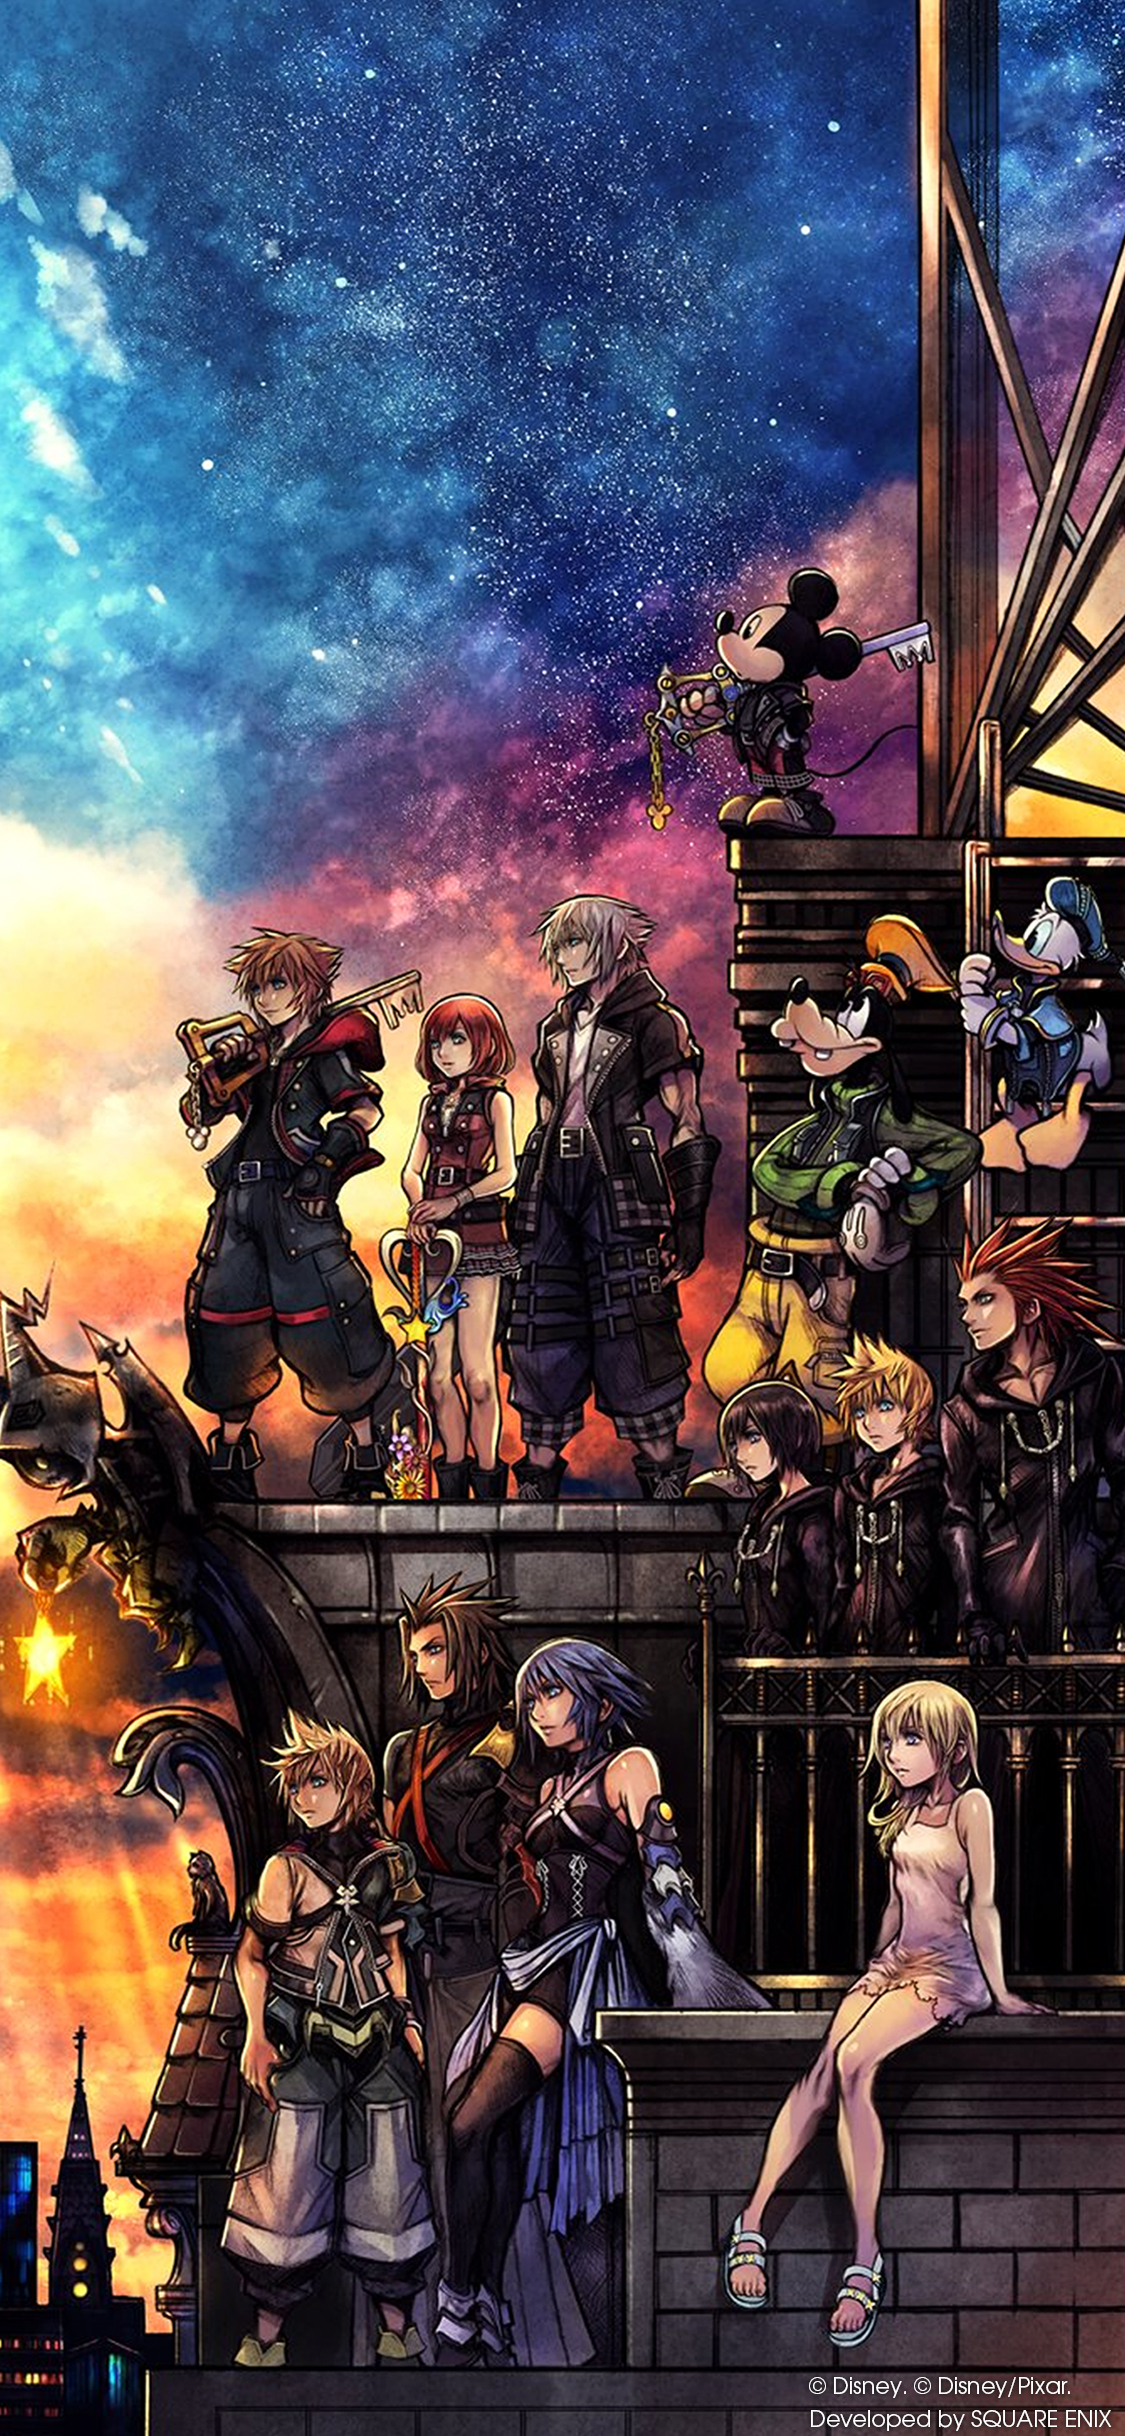 Kingdom Hearts Wallpaper Hd Kingdom Hearts Iii Wallpaper Cover Art Wallpaper Cat